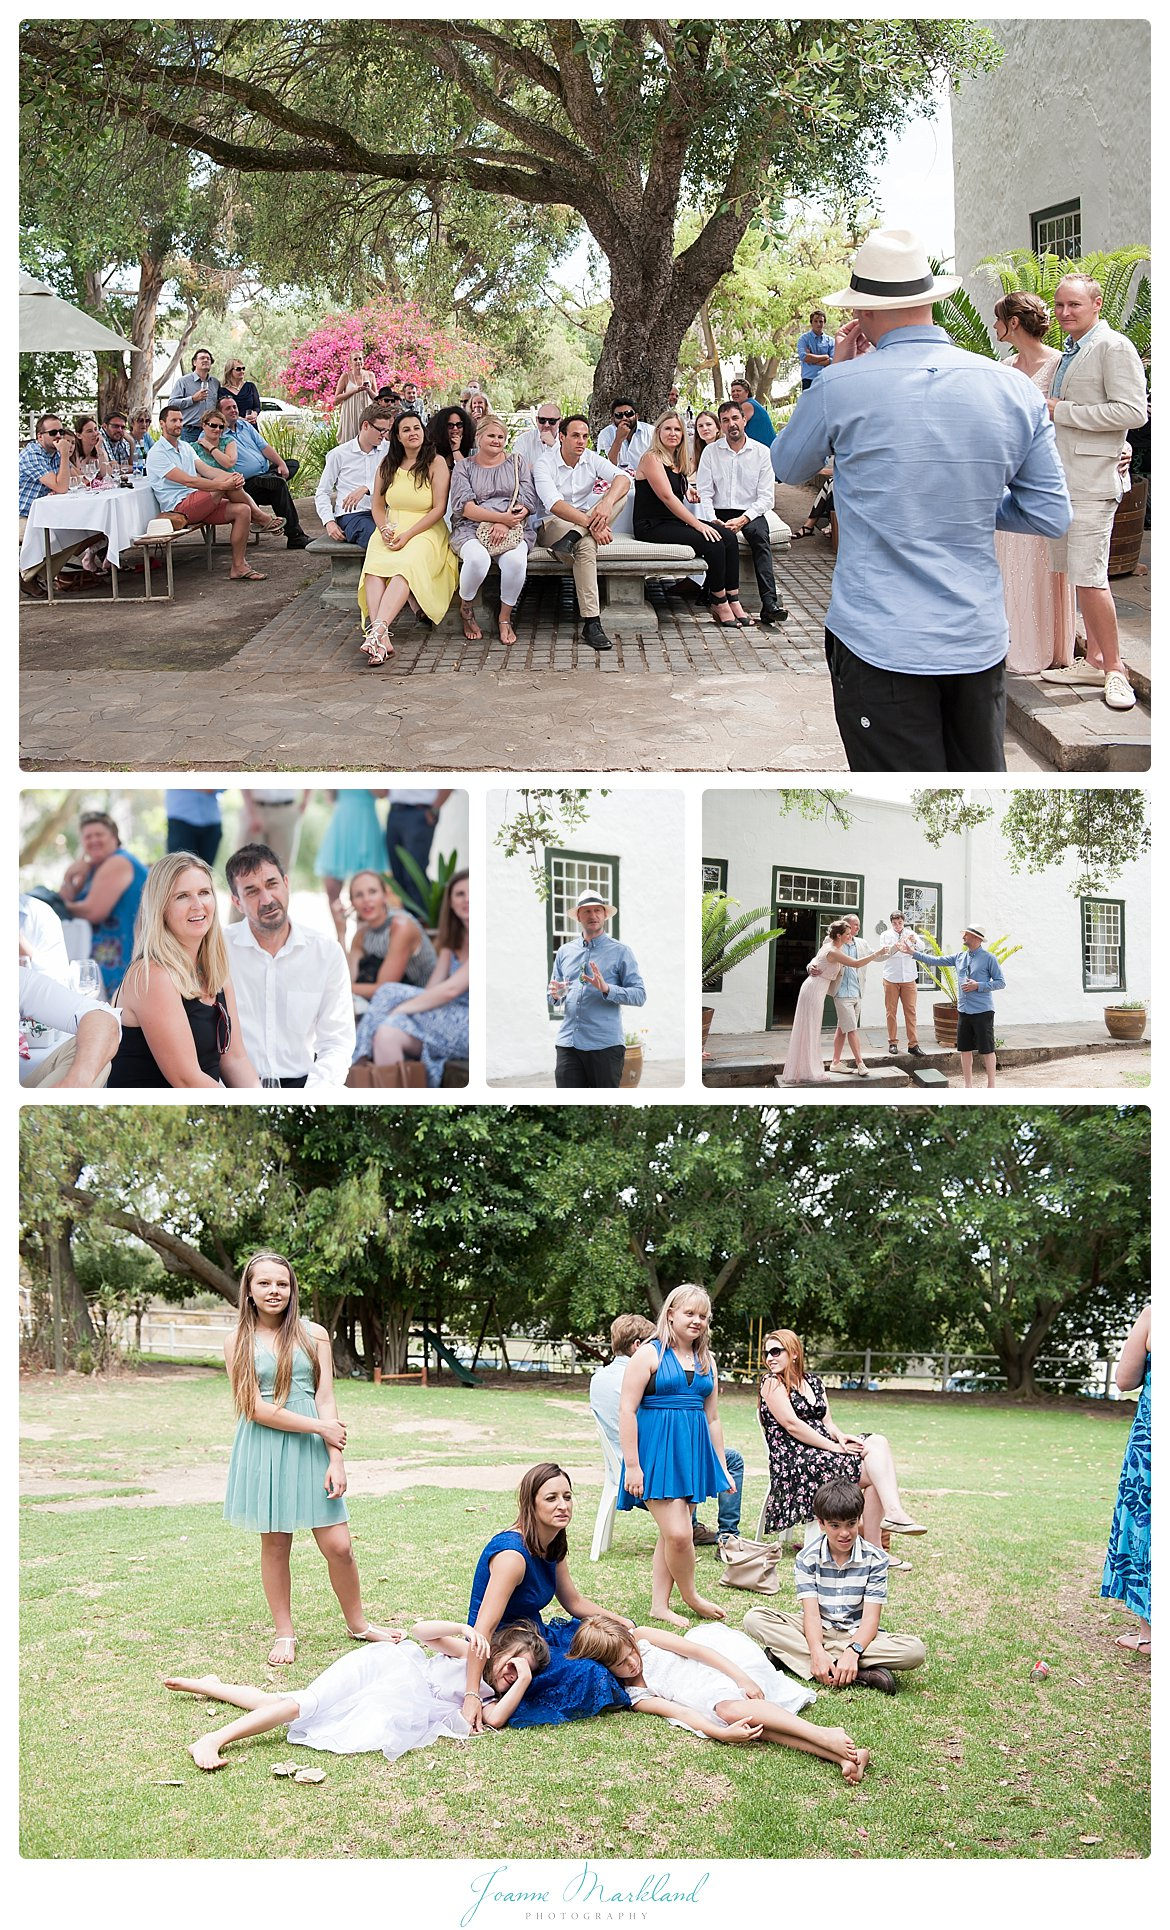 Grootepost-wedding-photography-joanne-markland-030